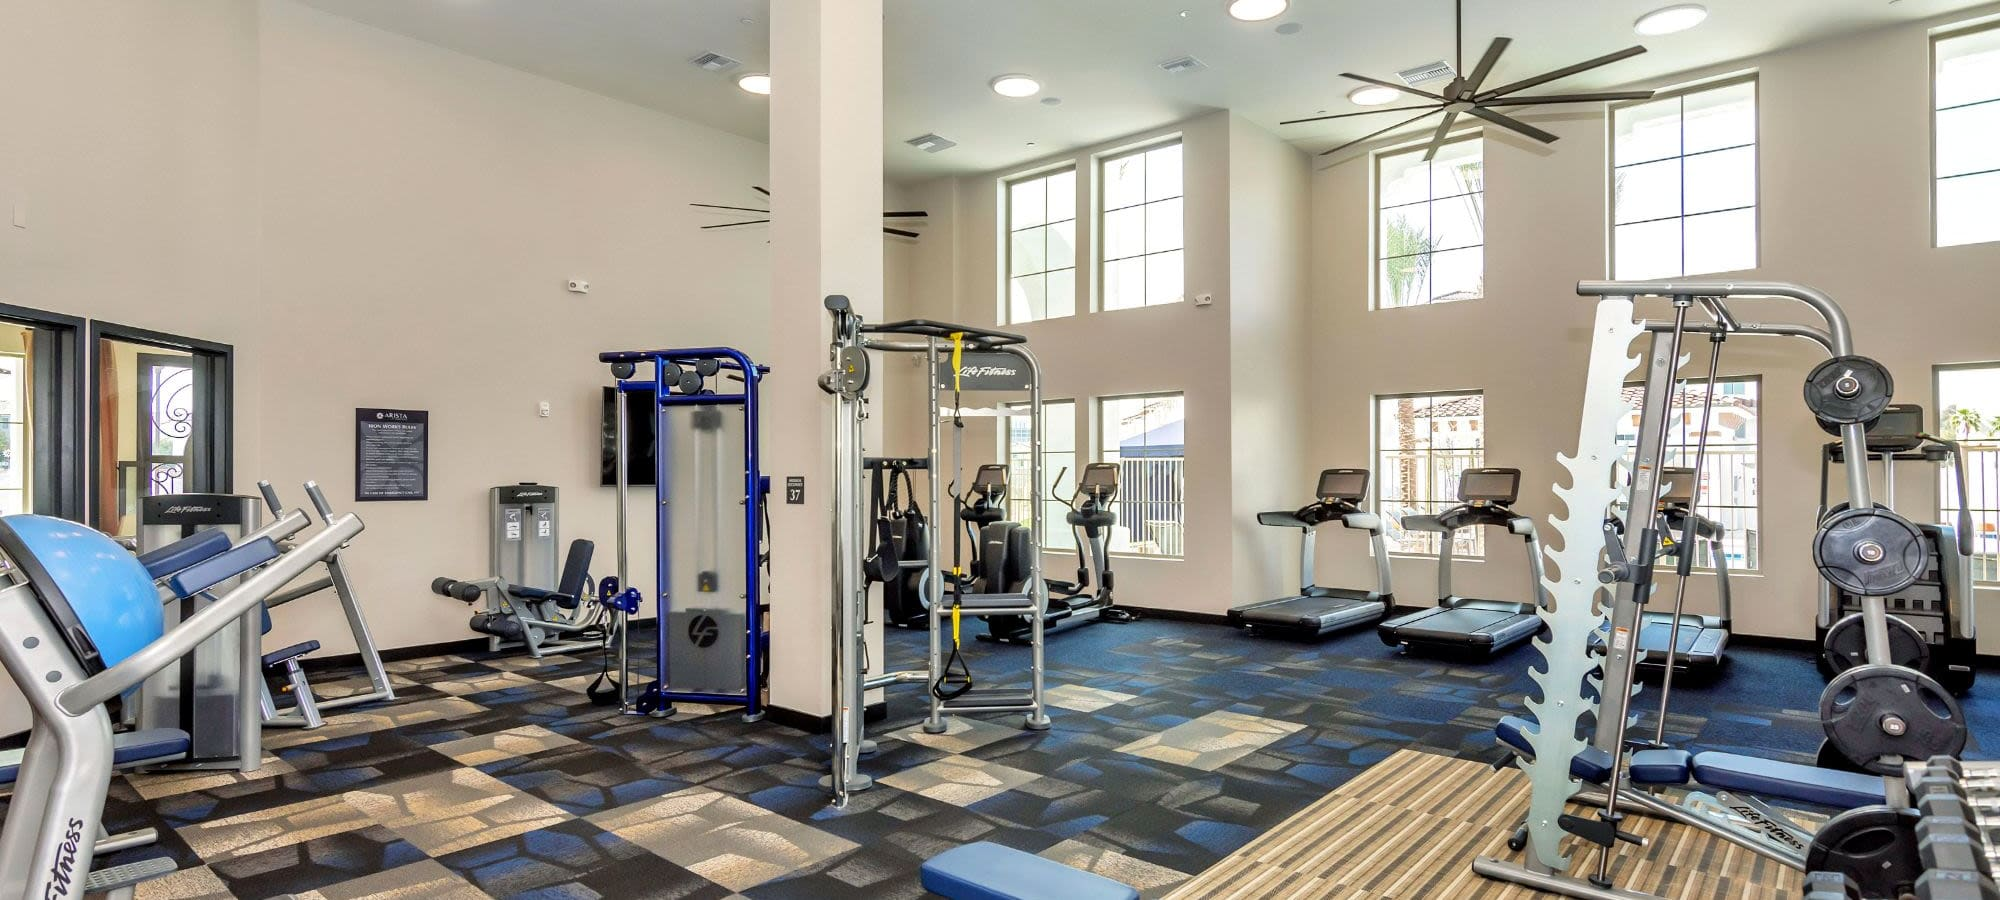 Fitness equipment at Arista at Ocotillo in Chandler, Arizona